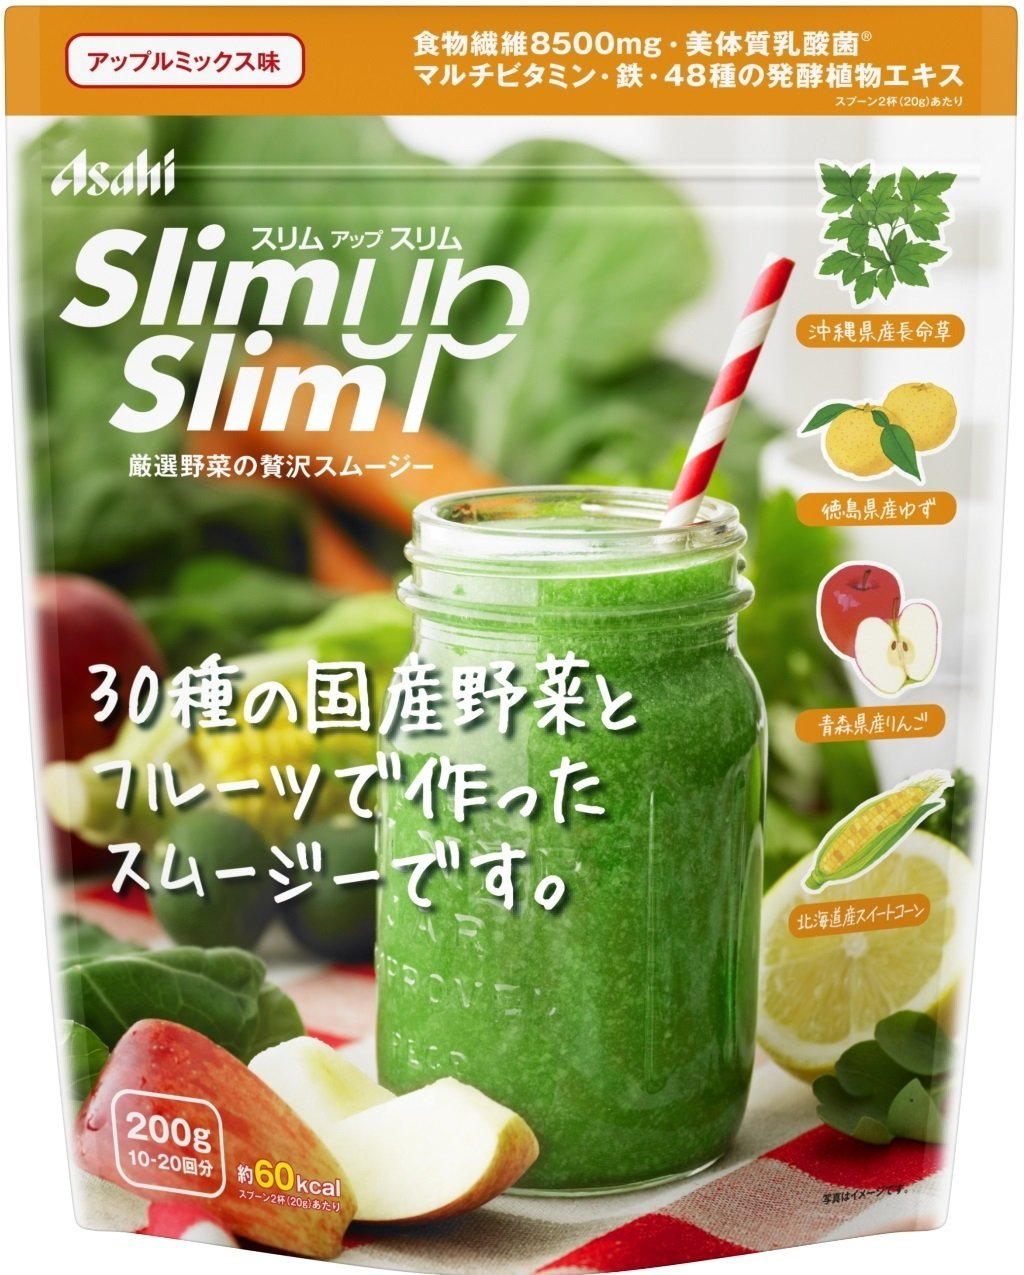 Bot-giam-can-Asahi-Slim-Up-Slim